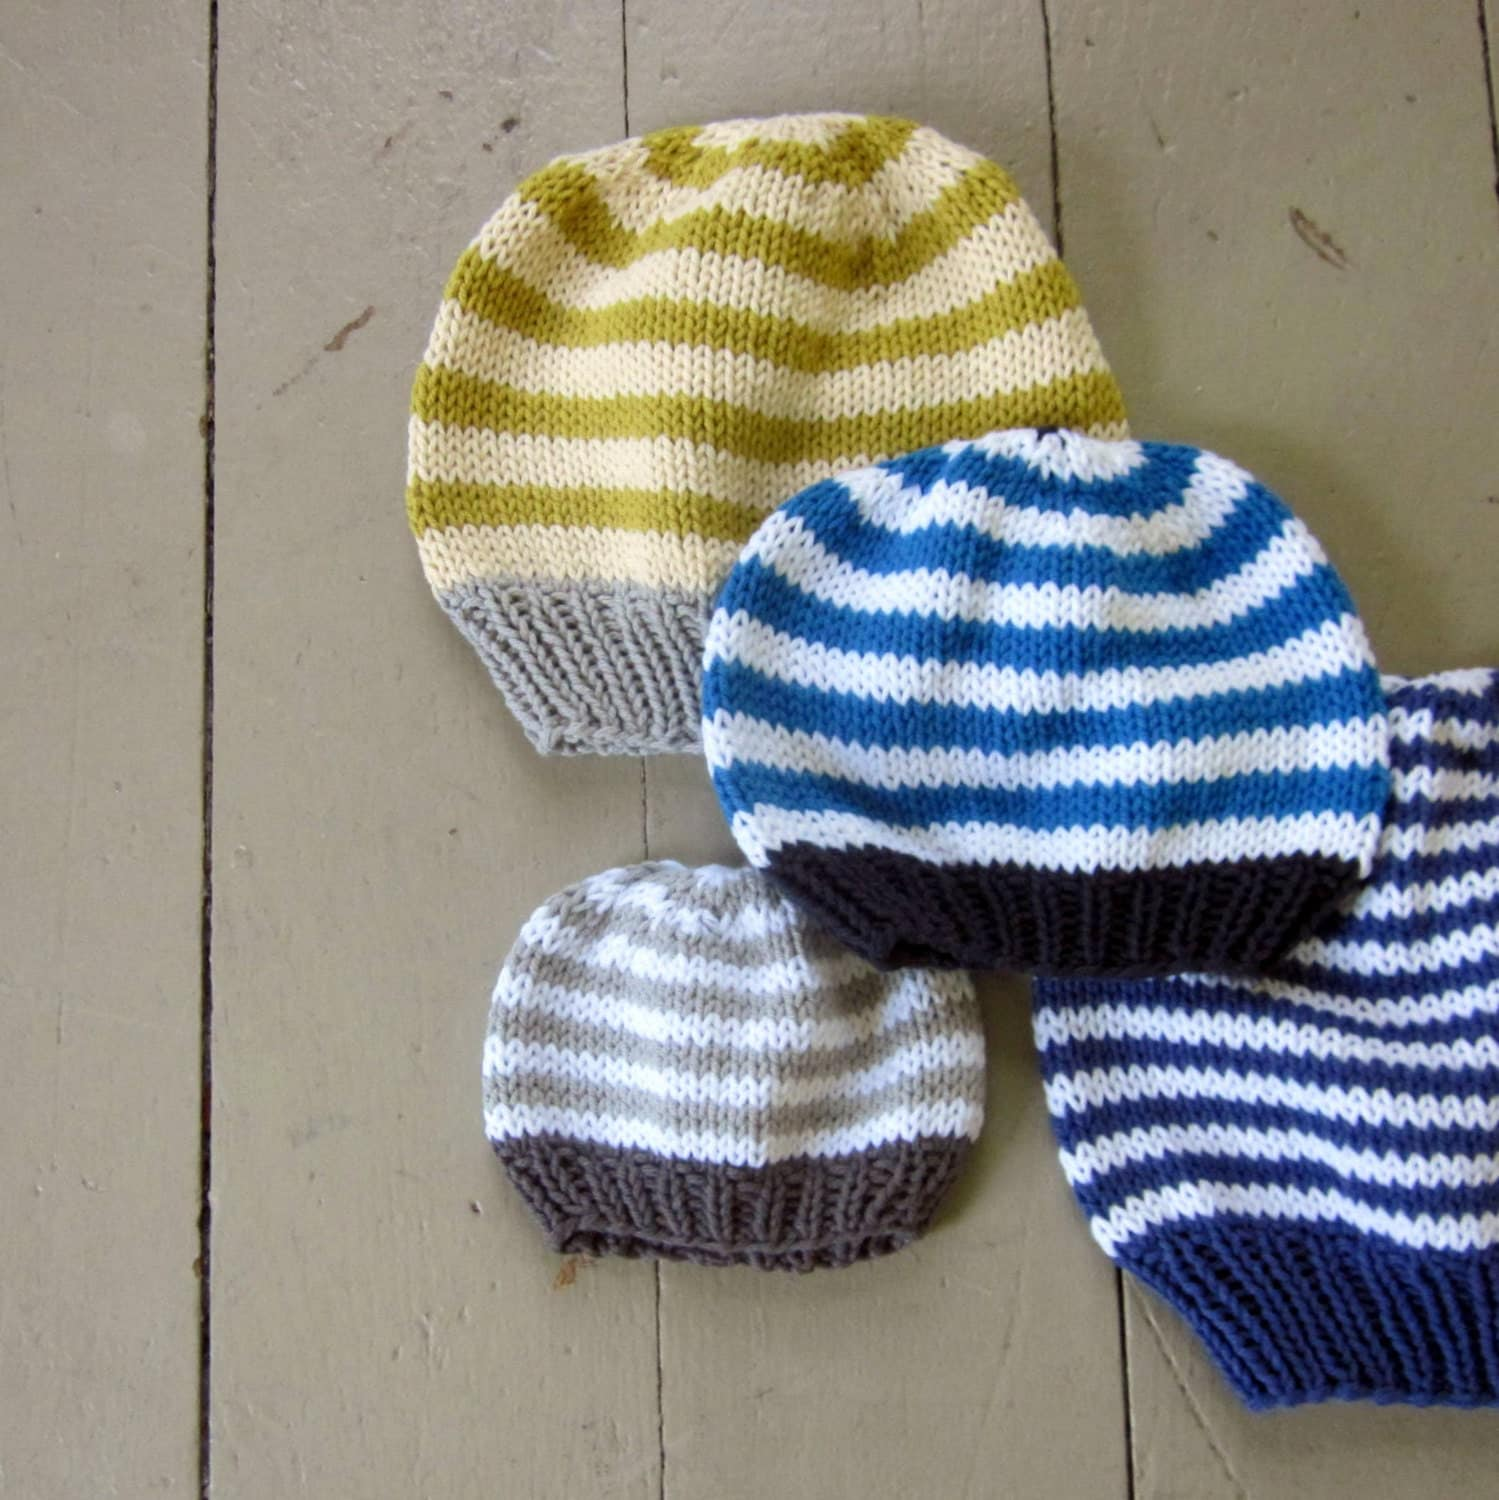 Baby Beanie Knit Pattern : Pattern, basic hat knitting pattern, PDF knitted hat pattern: newborn, baby, ...